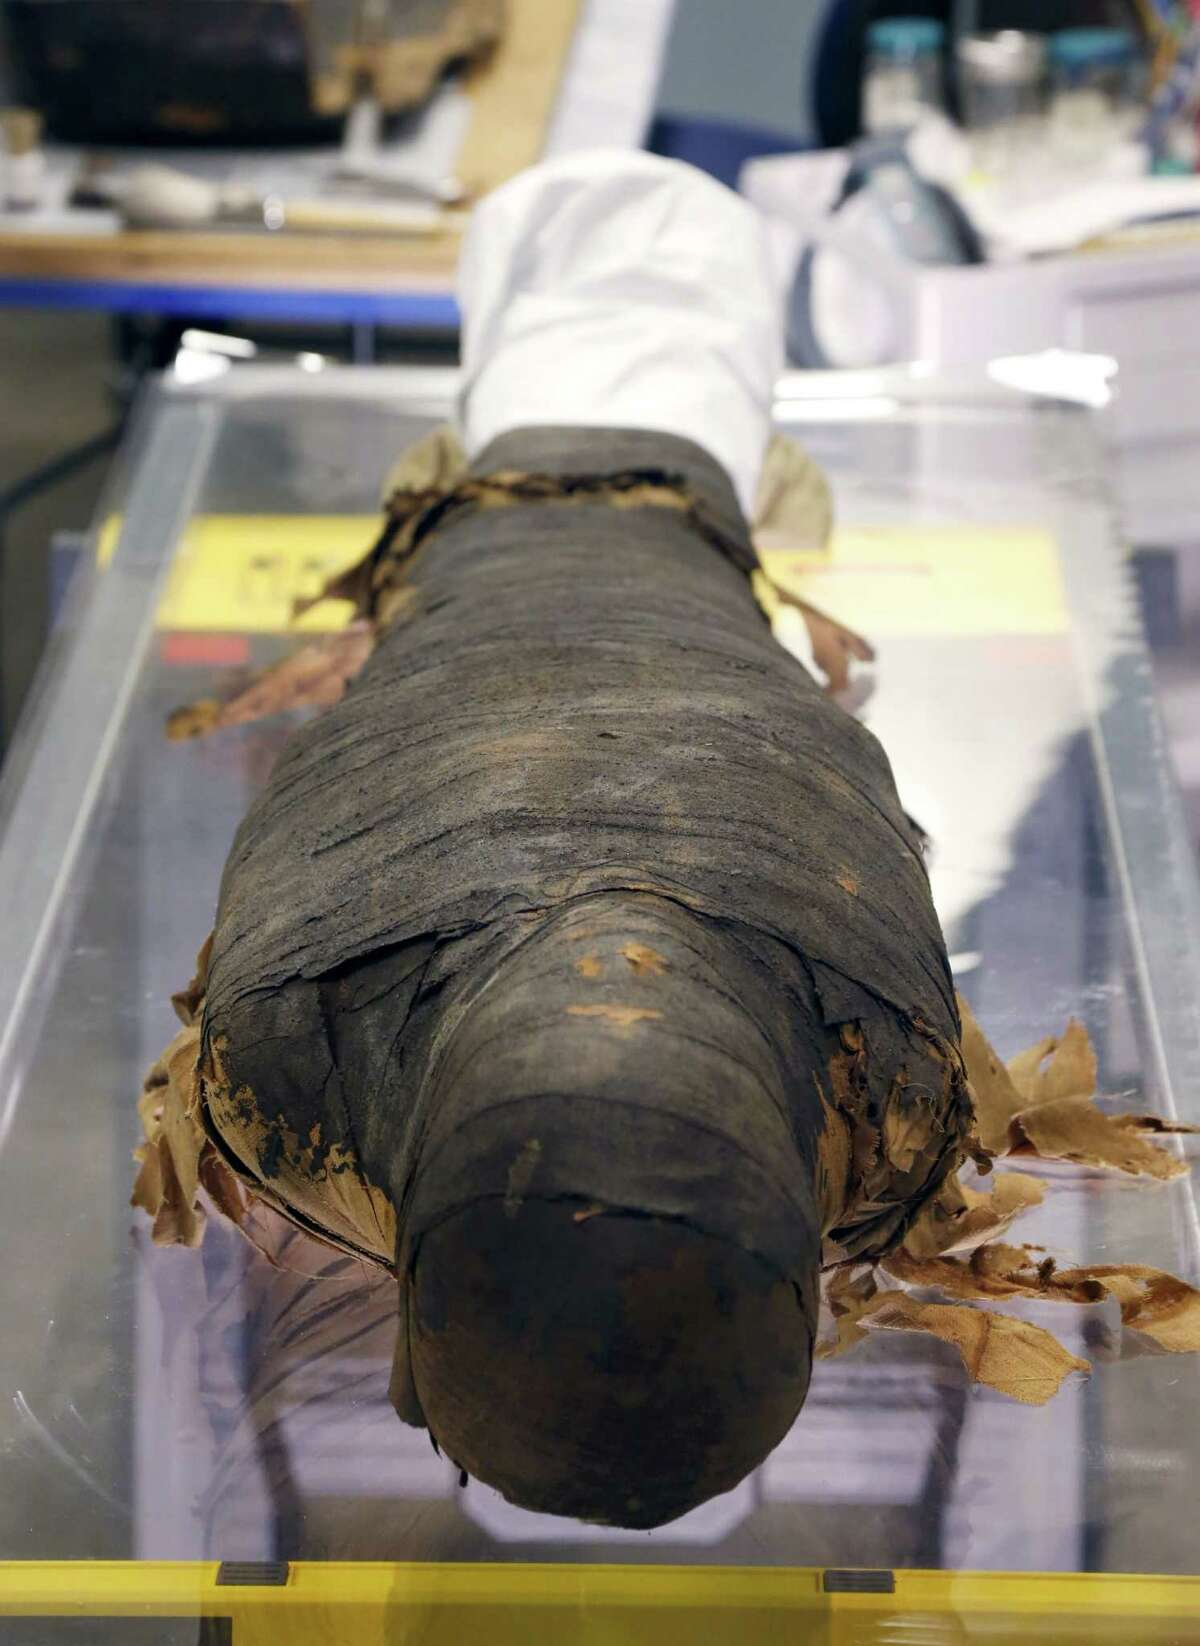 The mummified body of Minirdis, a 14-year-old Egyptian boy who was the son of a priest, lies on a glass table during the conservation process conducted by JP Brown, Regenstein Conservator, at the Field Museum, Wednesday, Dec. 10, 2014, in Chicago. Brown and his team opened the coffin of the 2,500-year-old mummy to perform conservation work before it becomes part of a traveling exhibition.